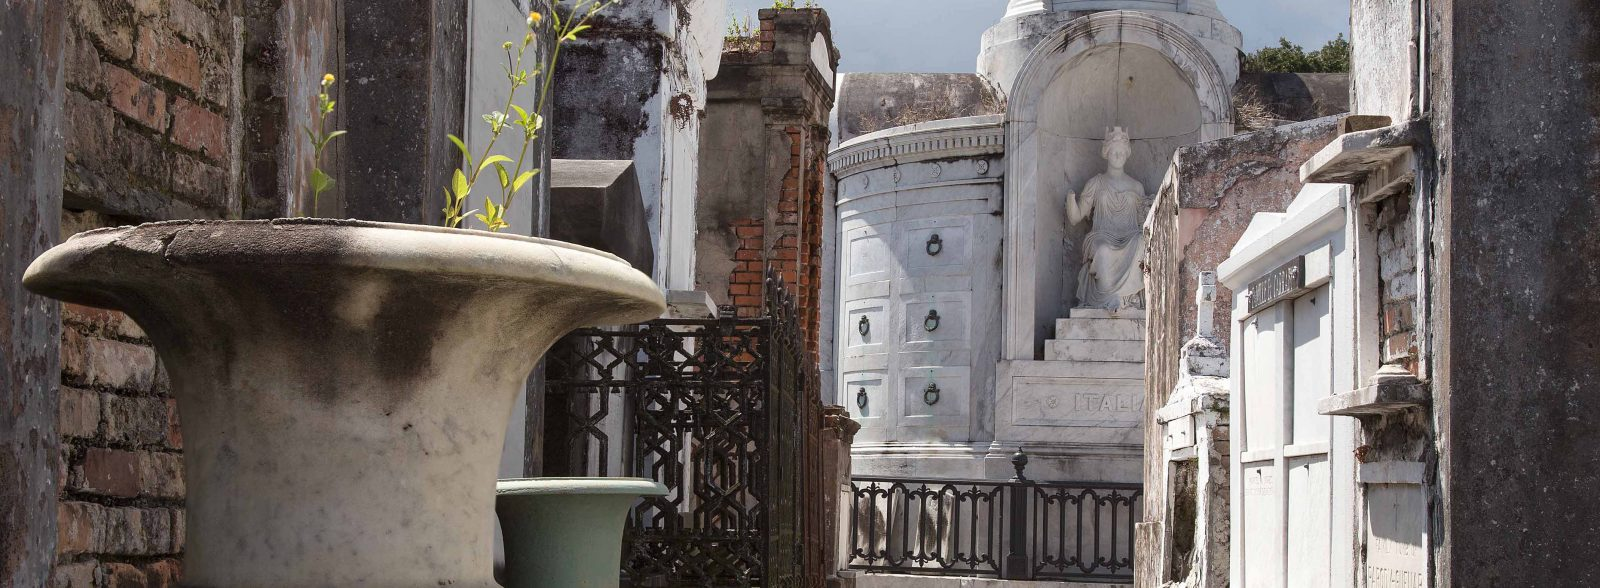 Preservation of the Saint Louis Cemeteries | Preservation Resource